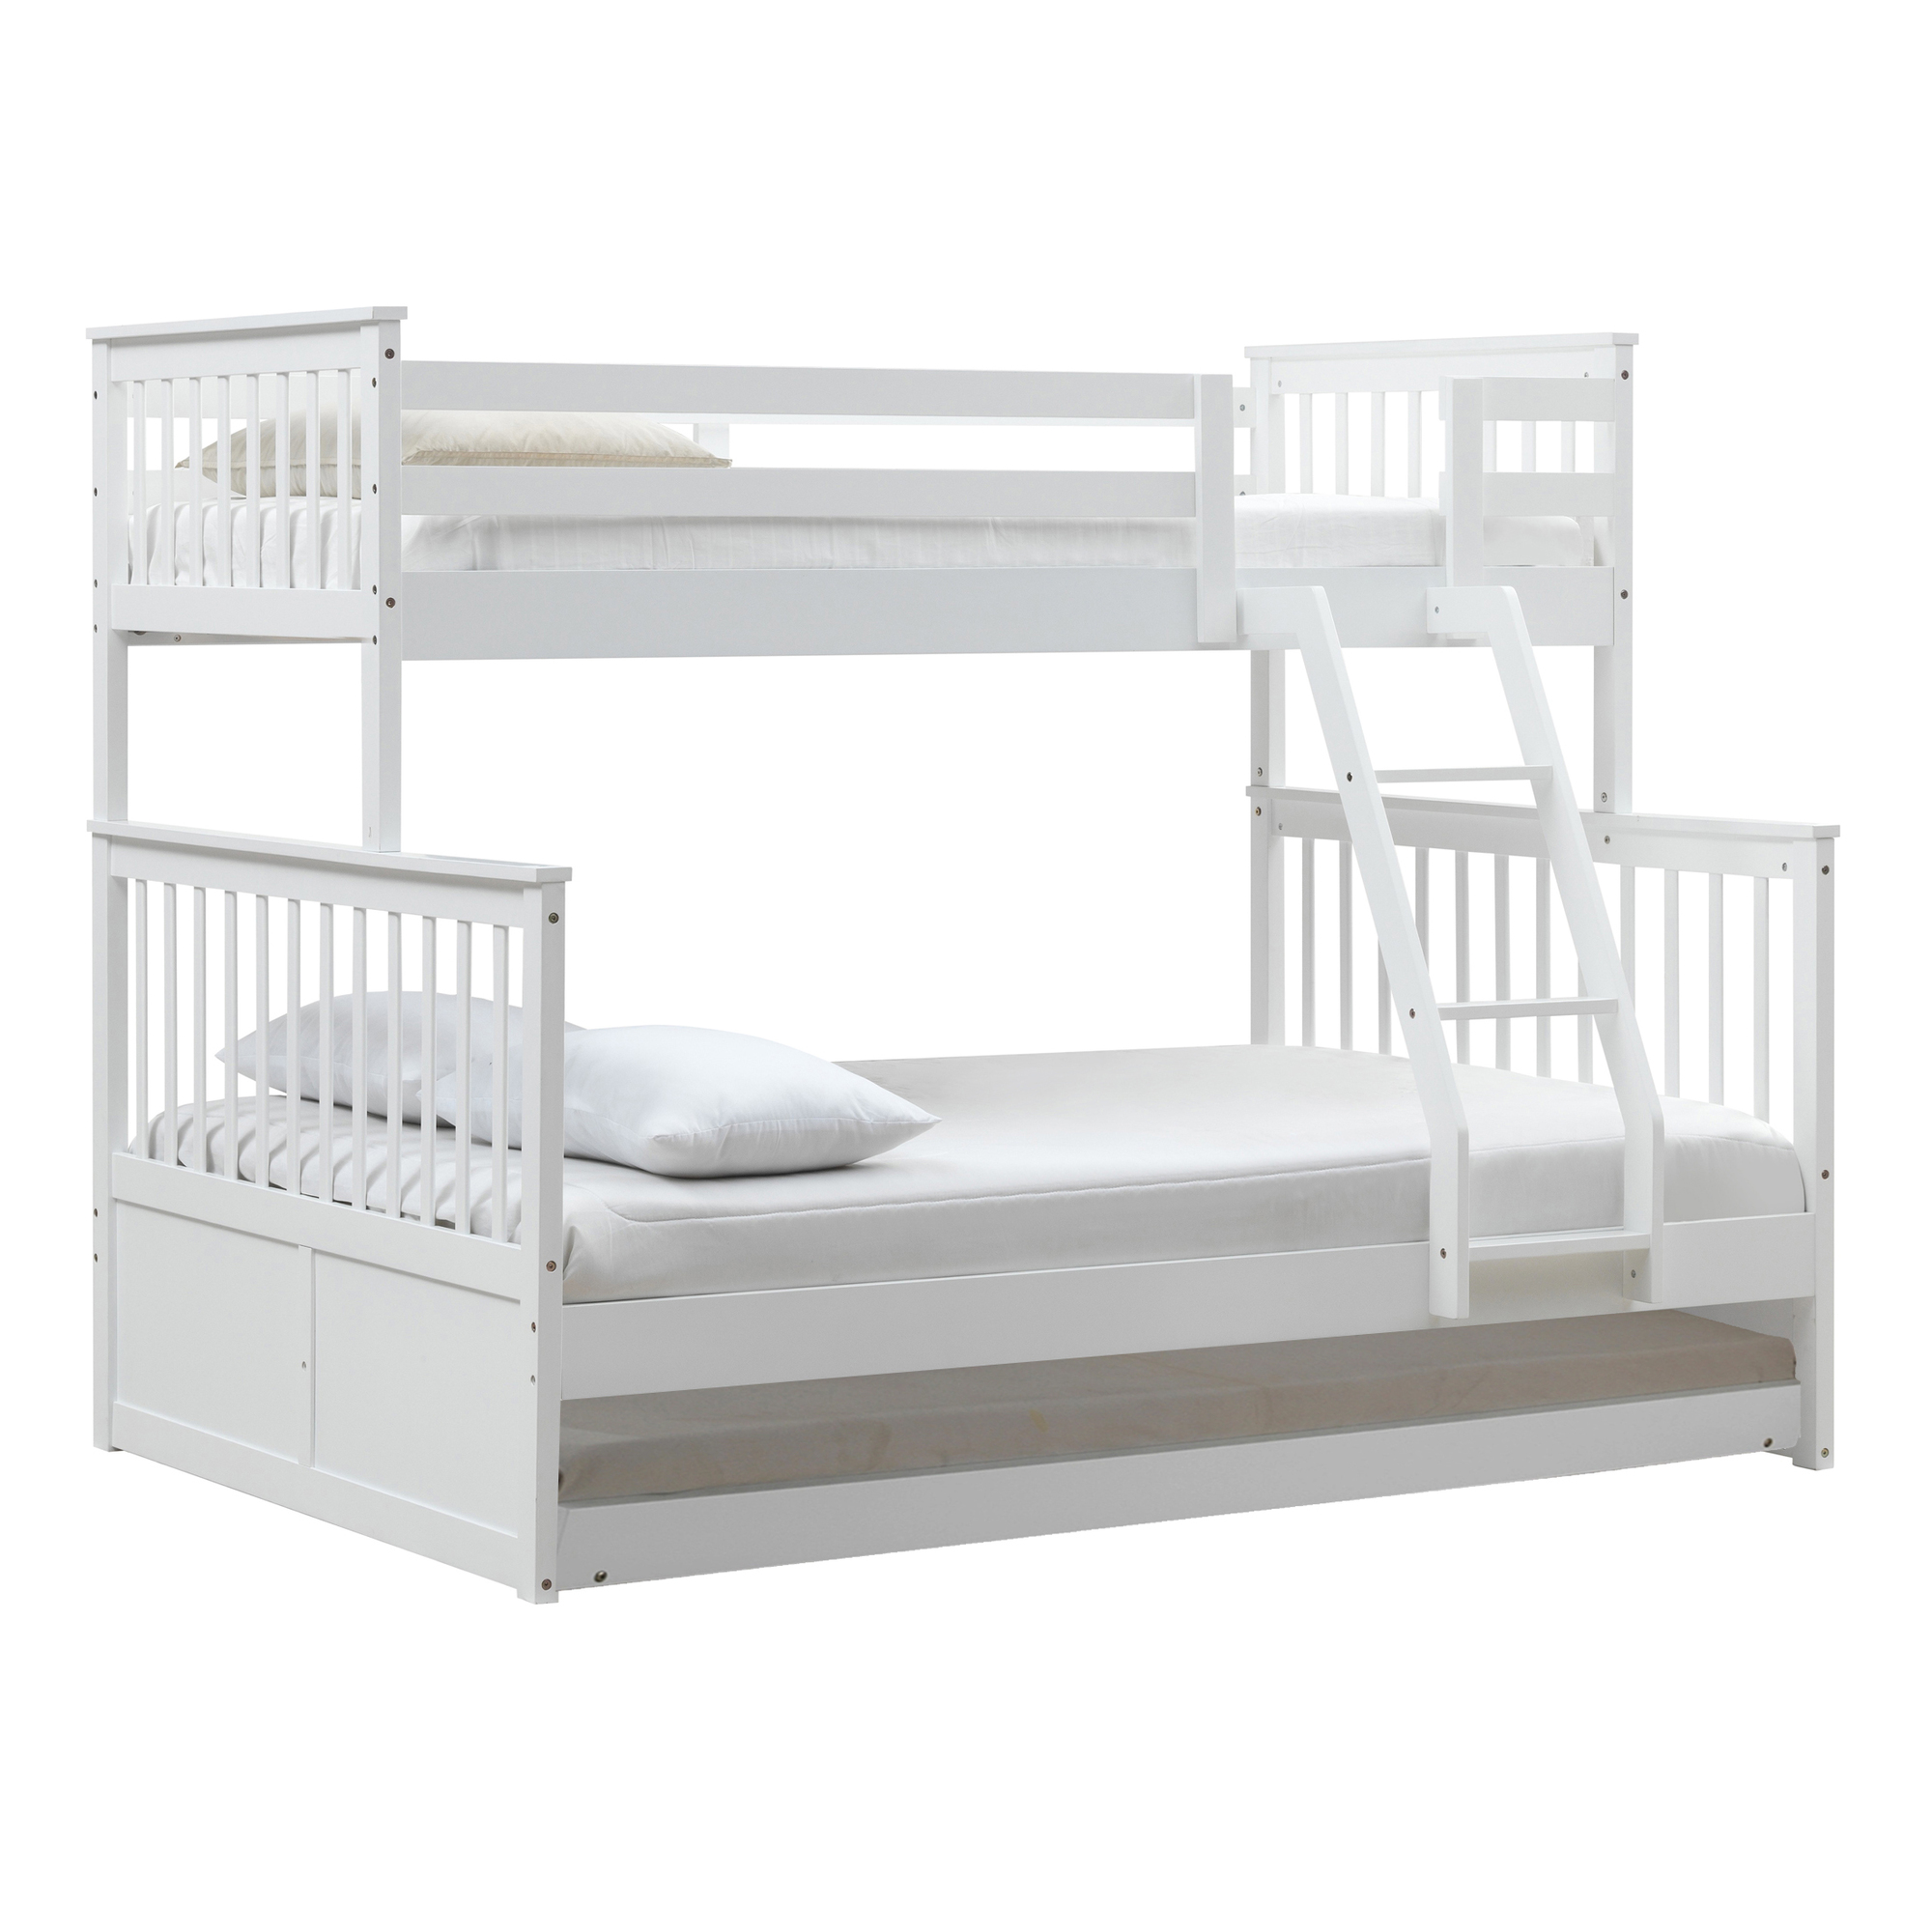 Vic Furniture White Seattle Single Over Double Bunk Bed With Trundle Reviews Temple Webster